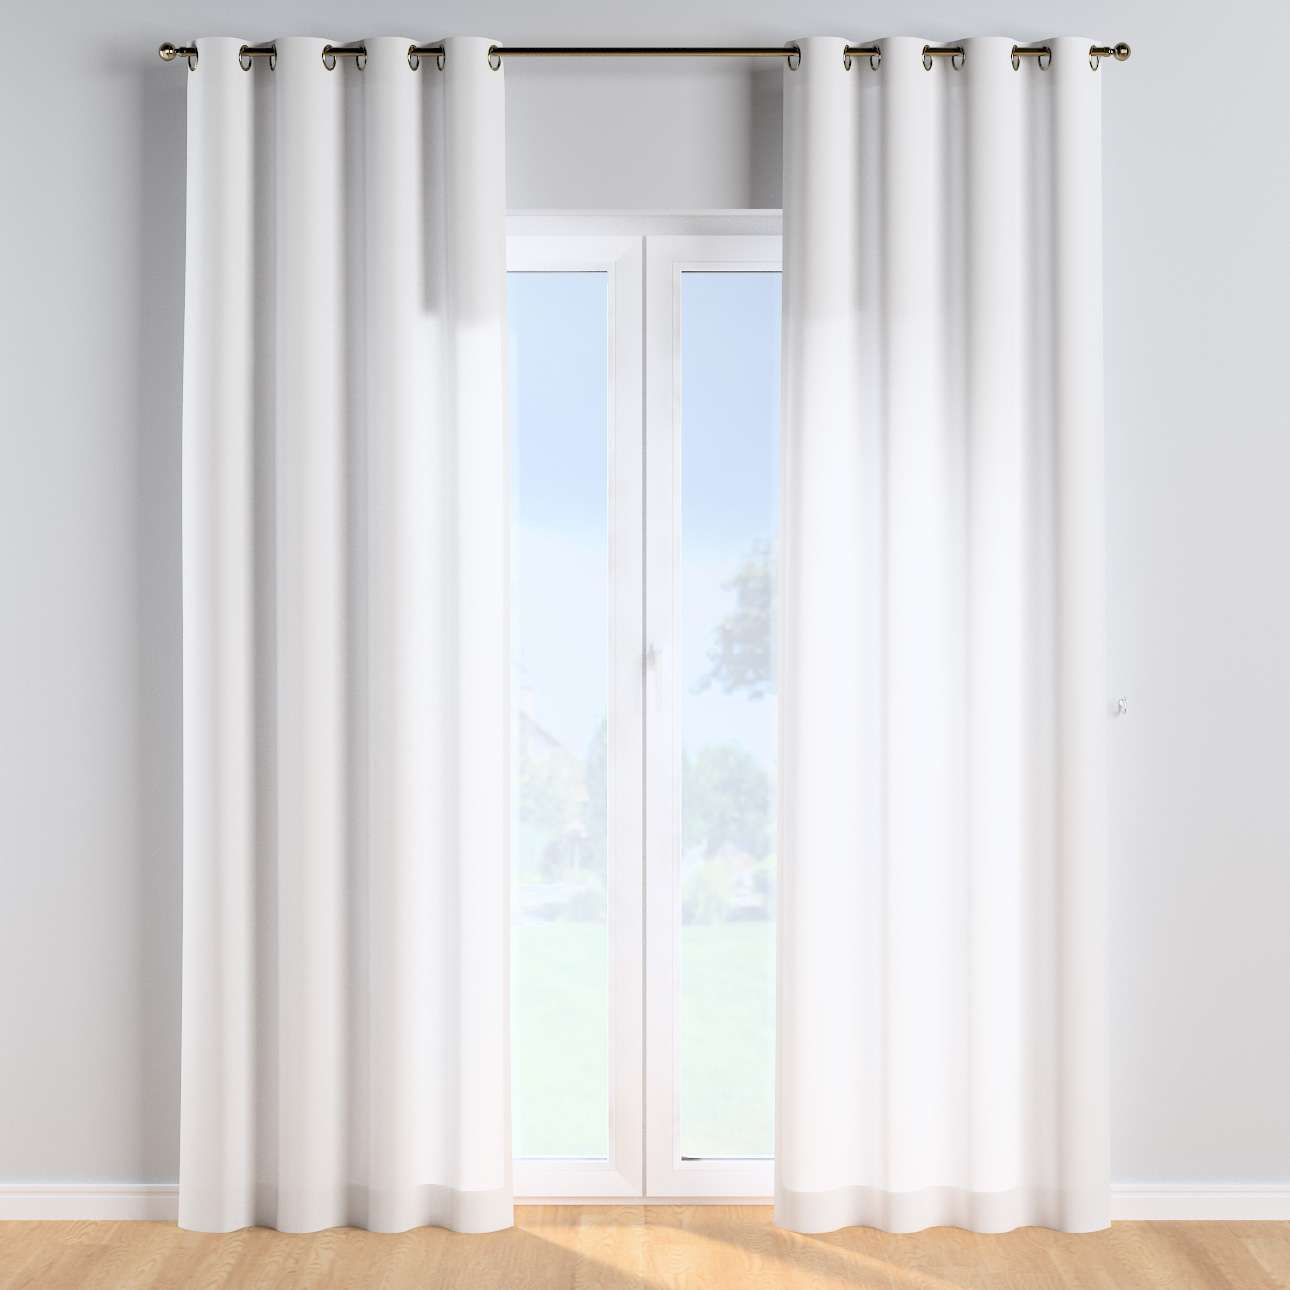 Eyelet curtains in collection Happiness, fabric: 133-02